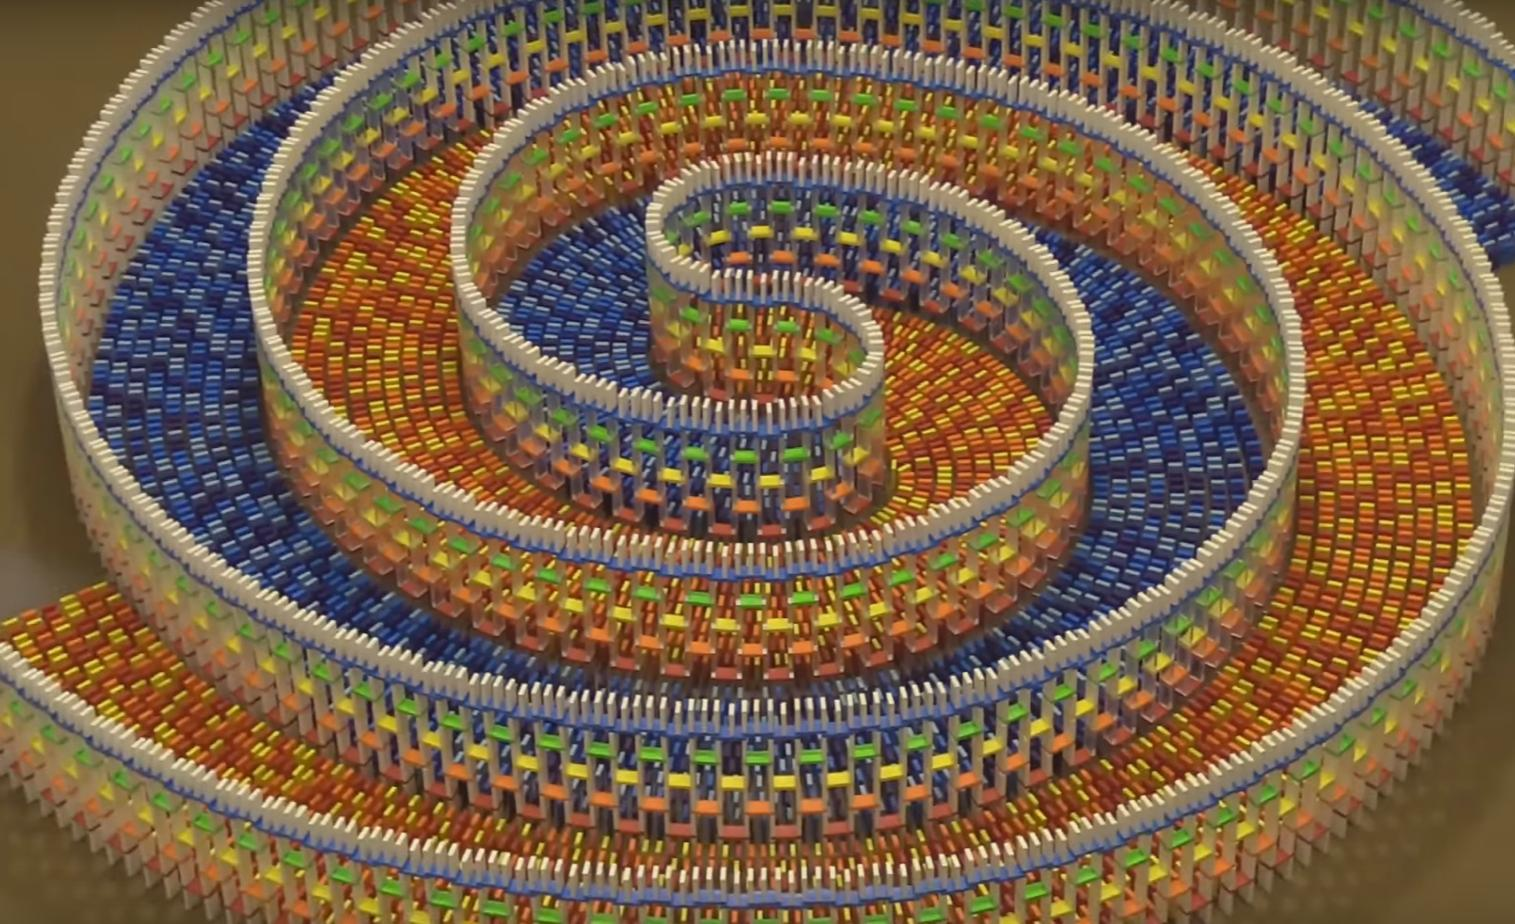 15,000 Dominoes in an Amazing Triple Spiral Structure